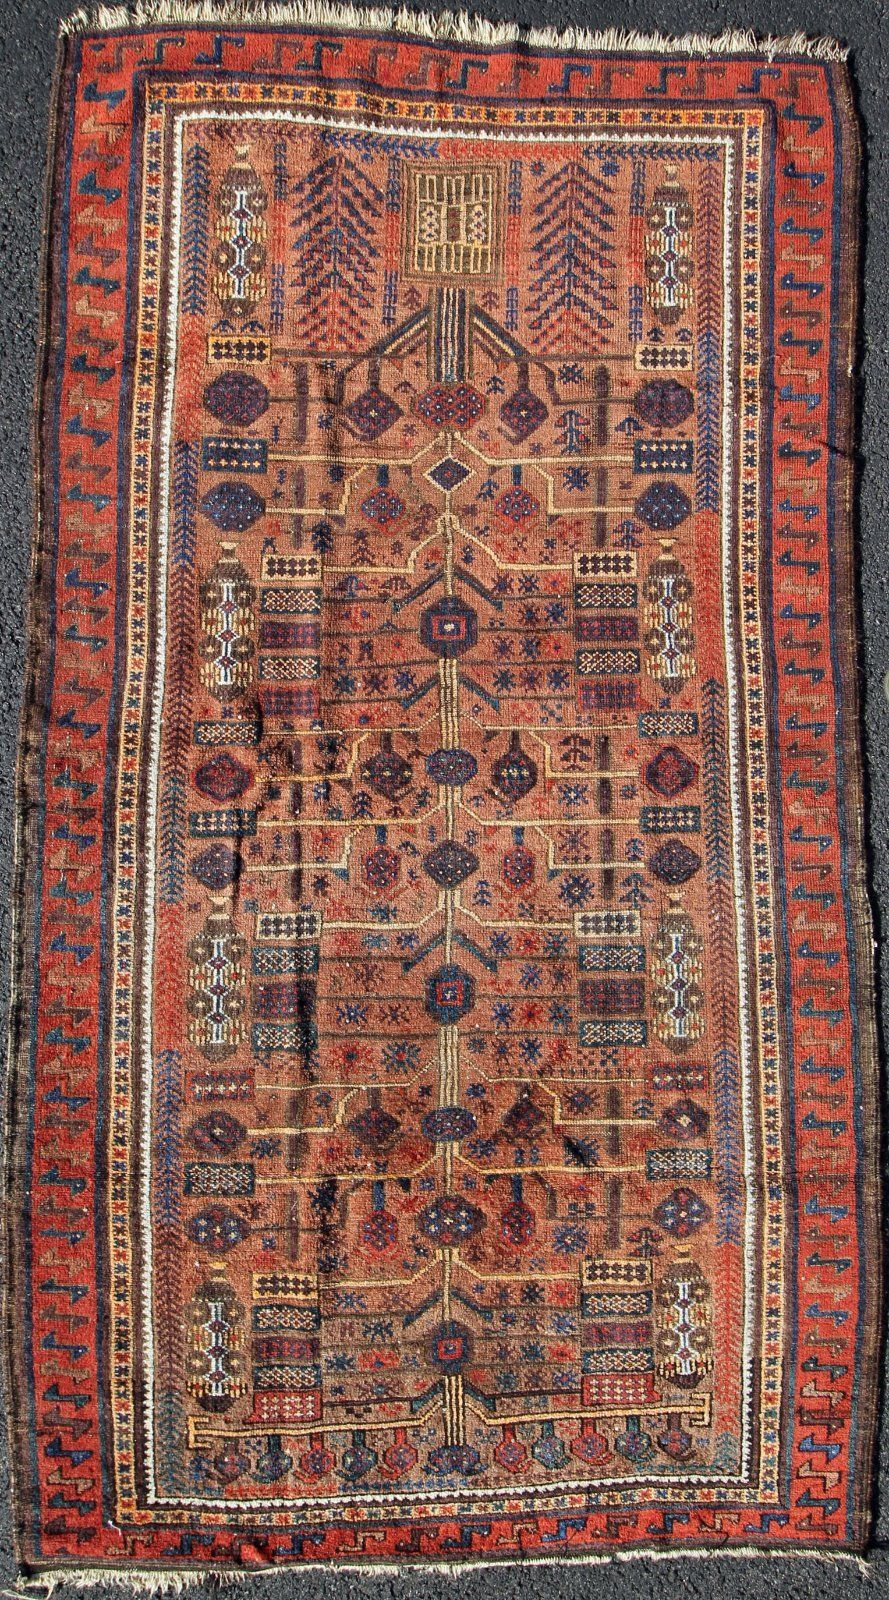 Antique Baluch Prayer Rug In Antiques Rugs Carpets Small 3x5 And Smaller